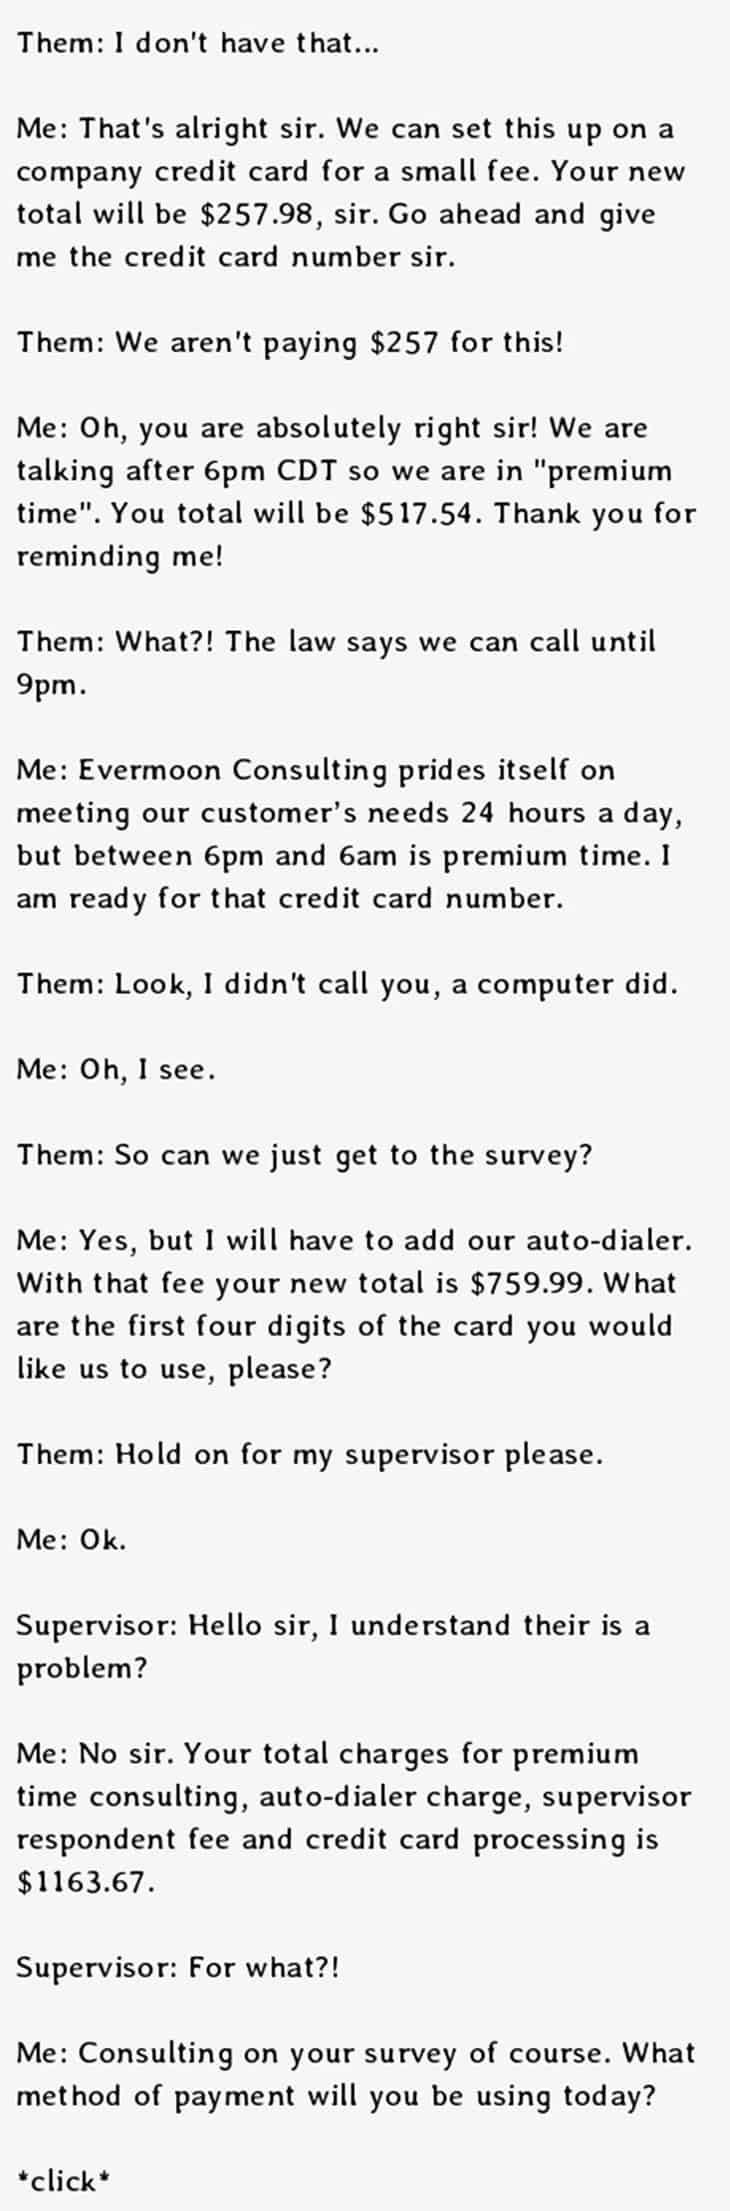 funny-phone-call-charges-prank-consulting